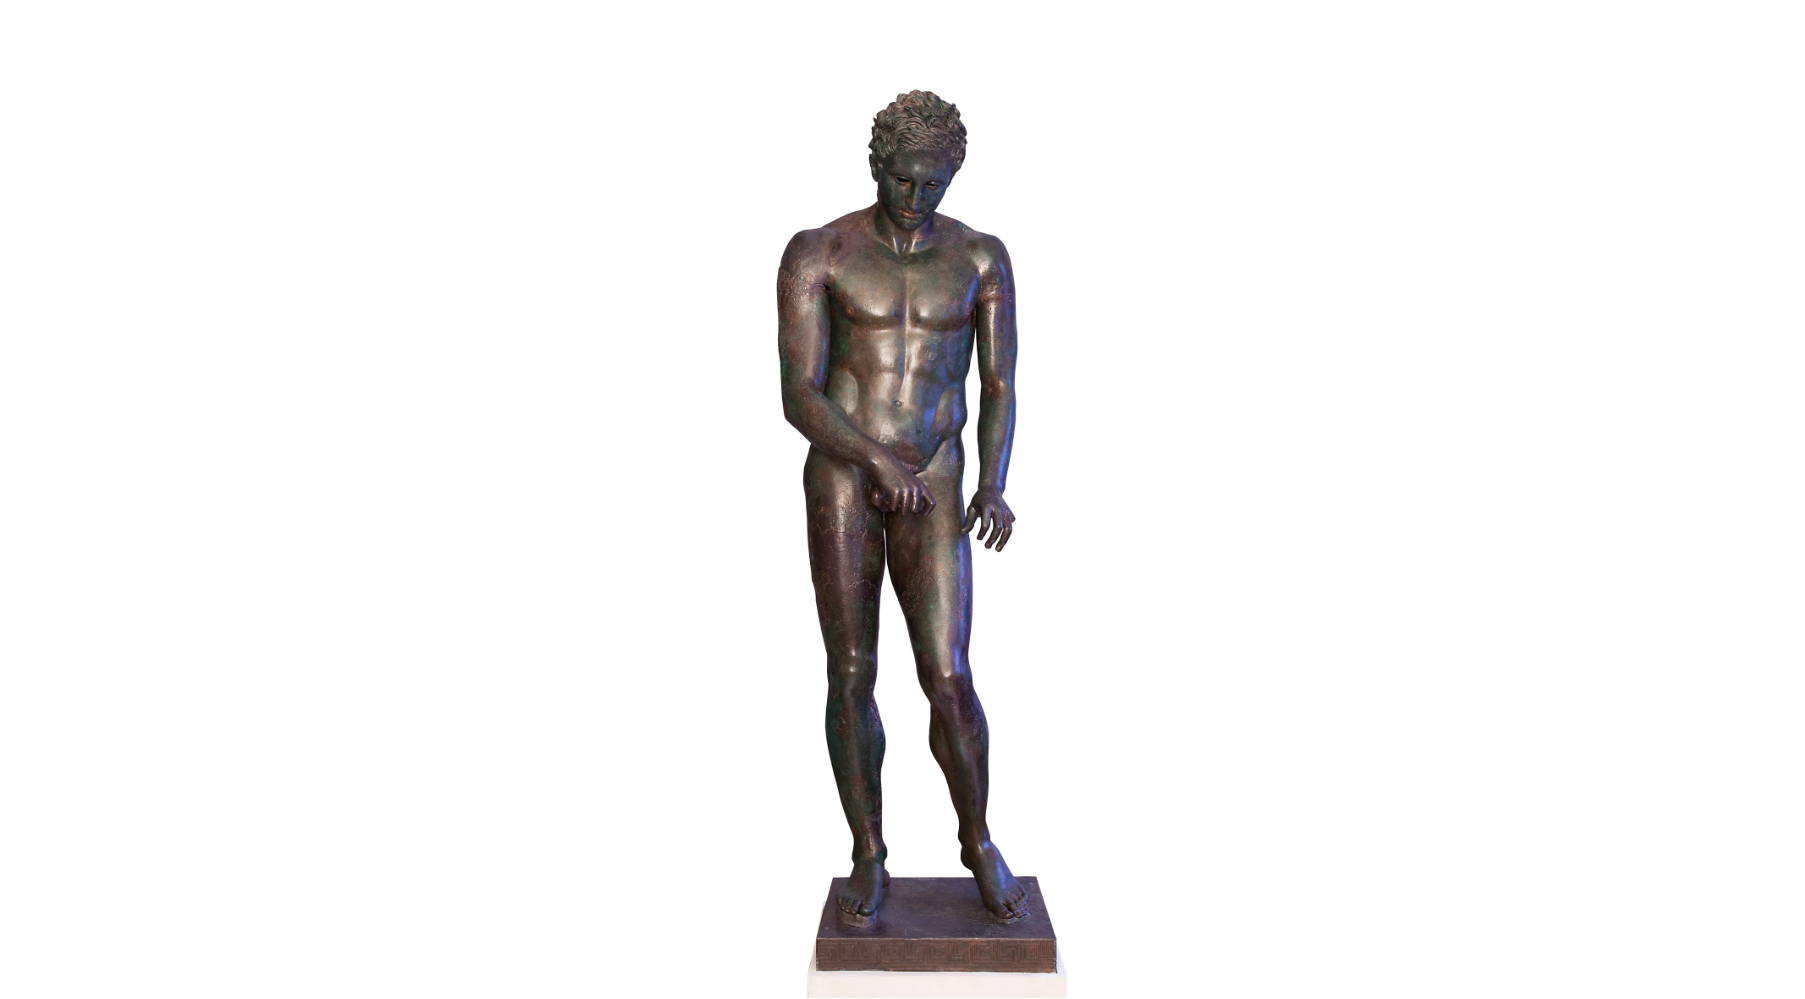 (: Apoxyomenos. Bronze, Hellenistic or Roman replica after a bronze original from the second quarter or the end of the 4th century BC. © Tourism Board of Mali Losinj)